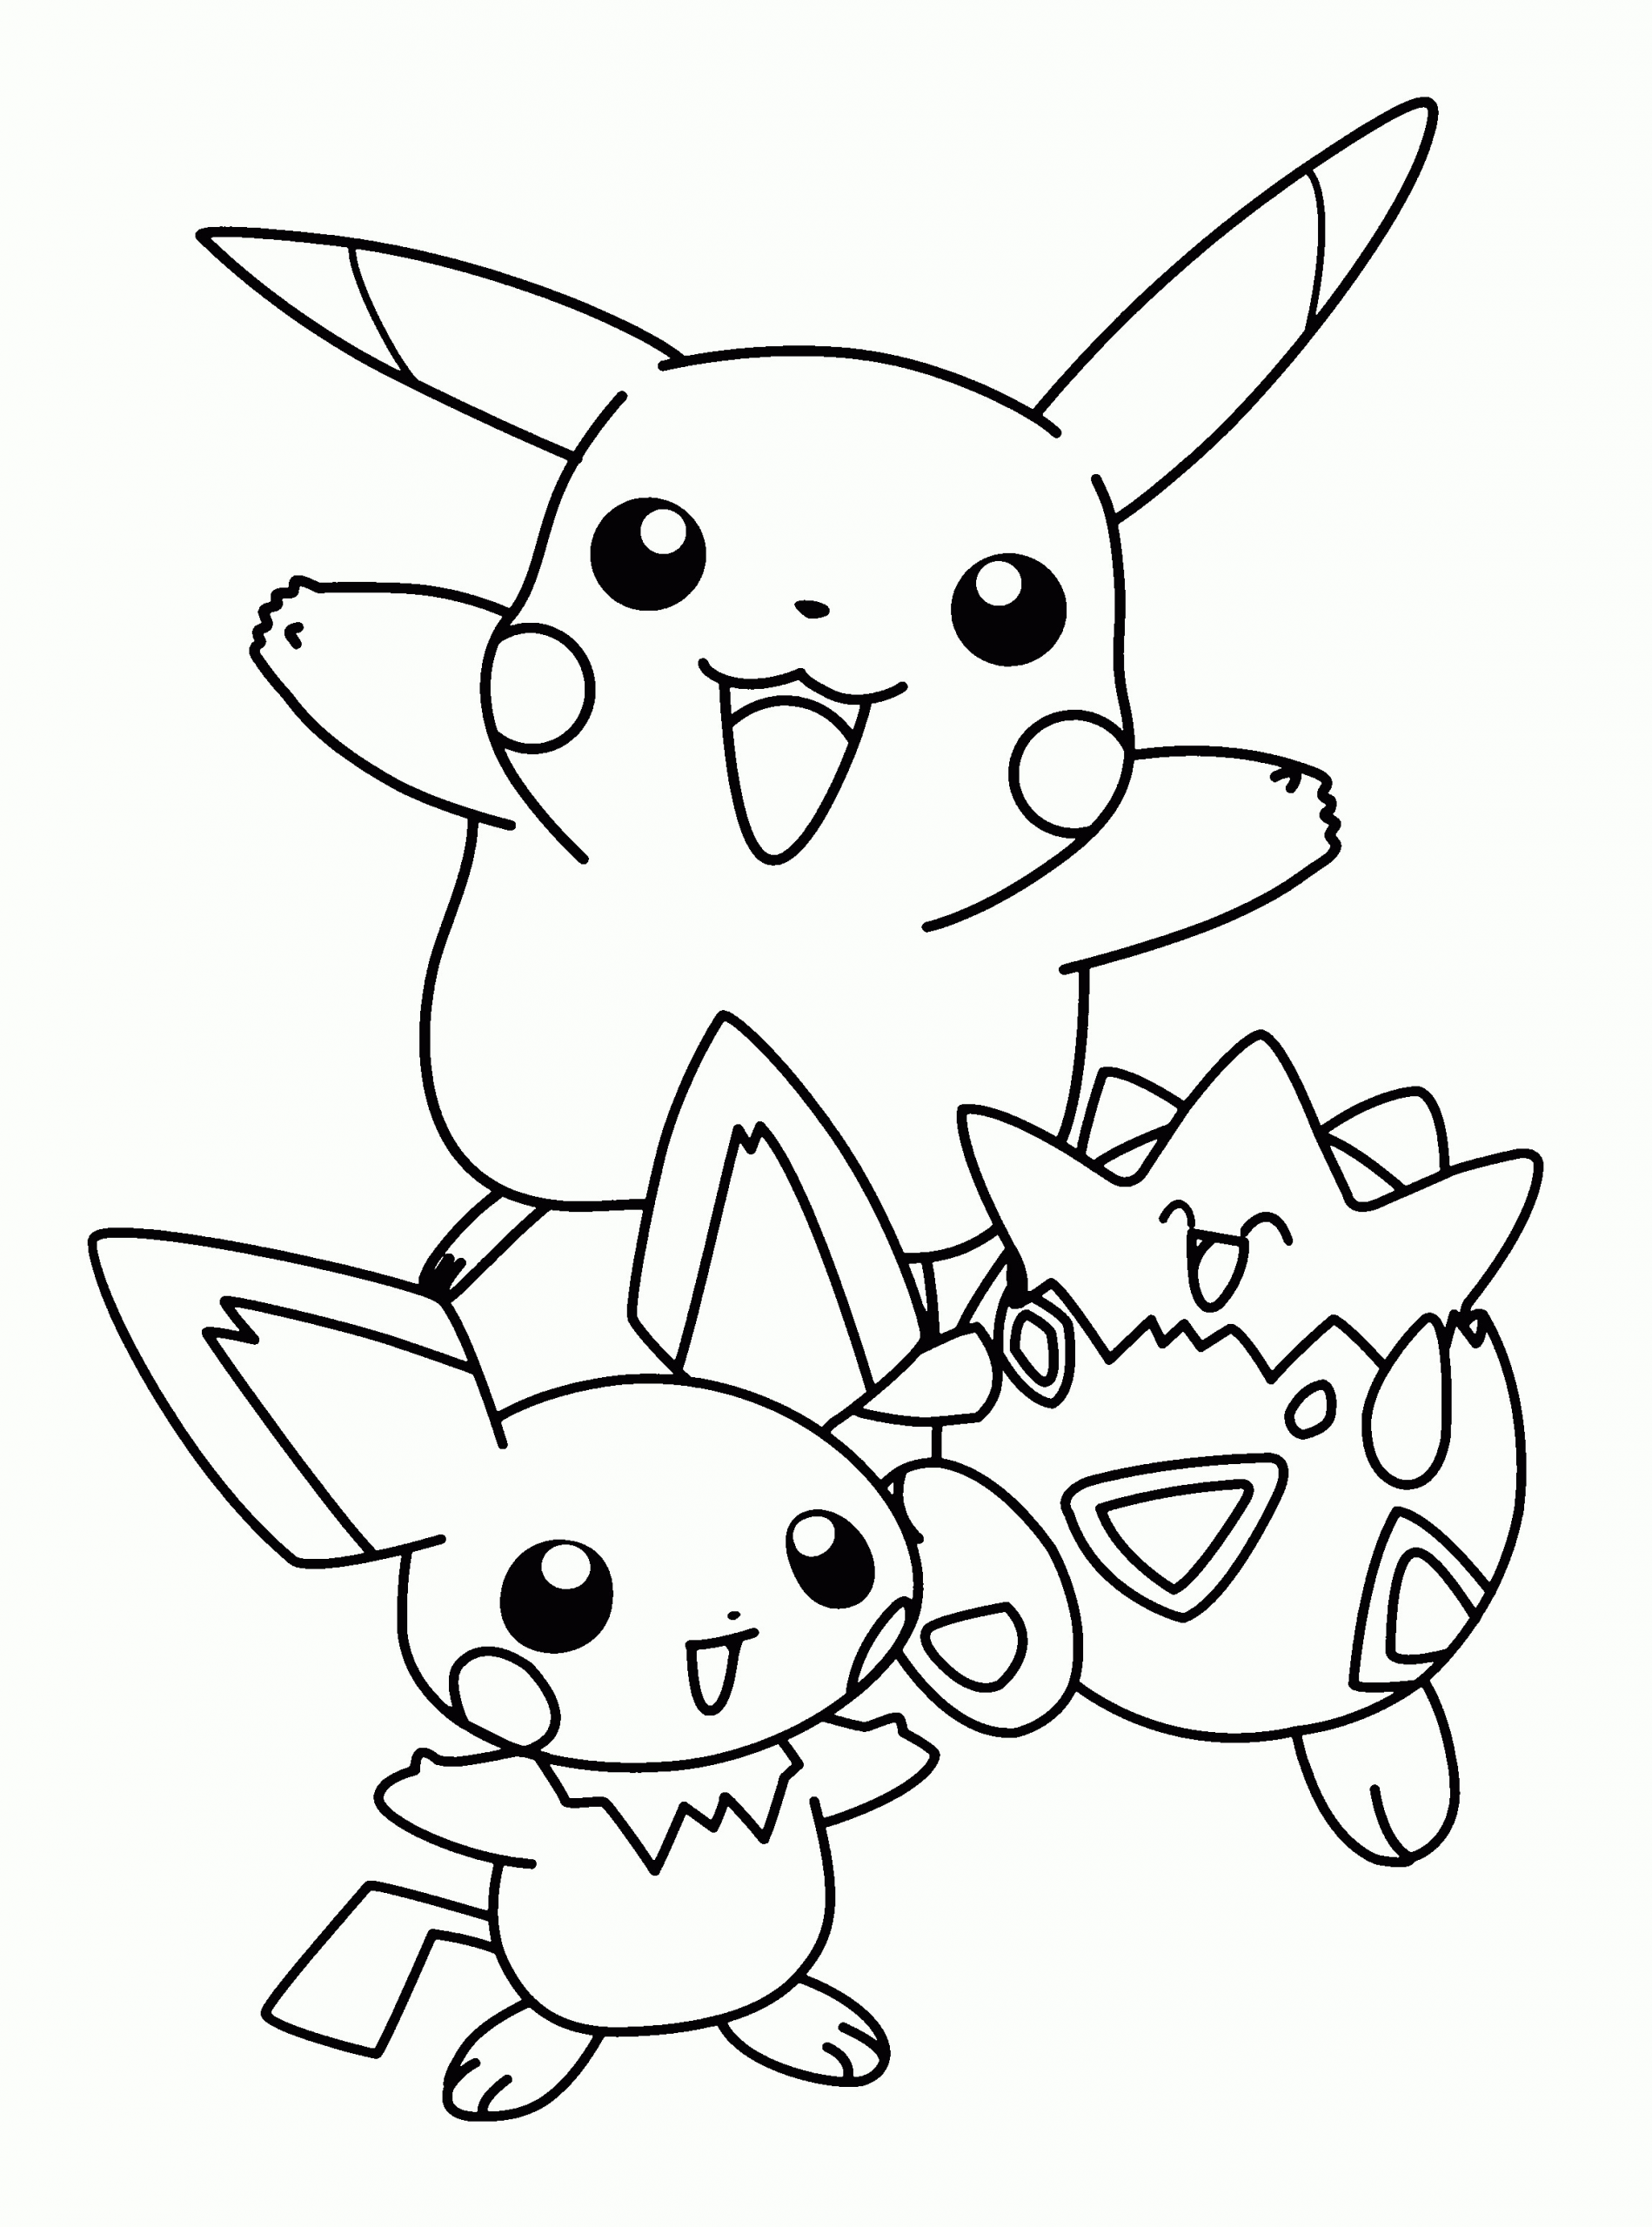 Pokemon Coloring Page Free Youngandtae Com In 2020 Pokemon Coloring Sheets Pokemon Coloring Pages Pokemon Coloring